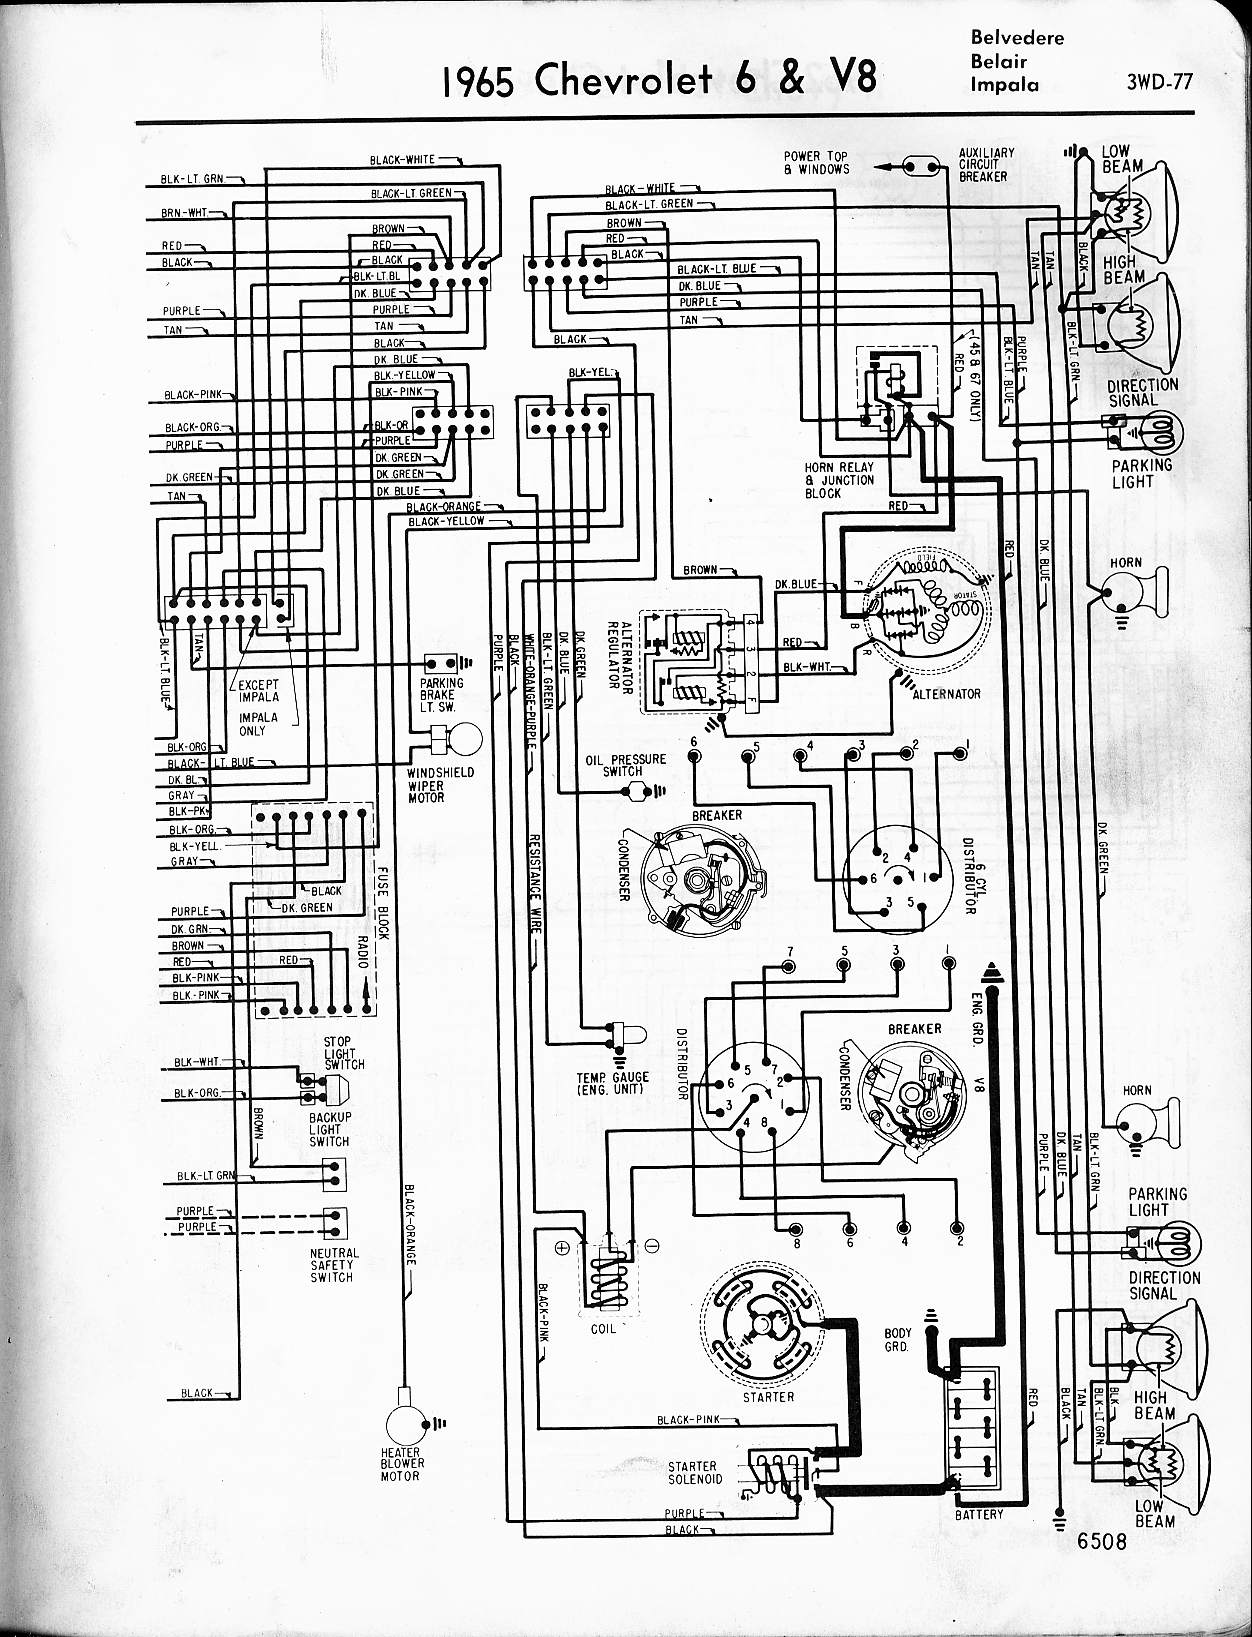 MWireChev65_3WD 077 57 65 chevy wiring diagrams 1965 chevy c10 wiring diagram at gsmportal.co